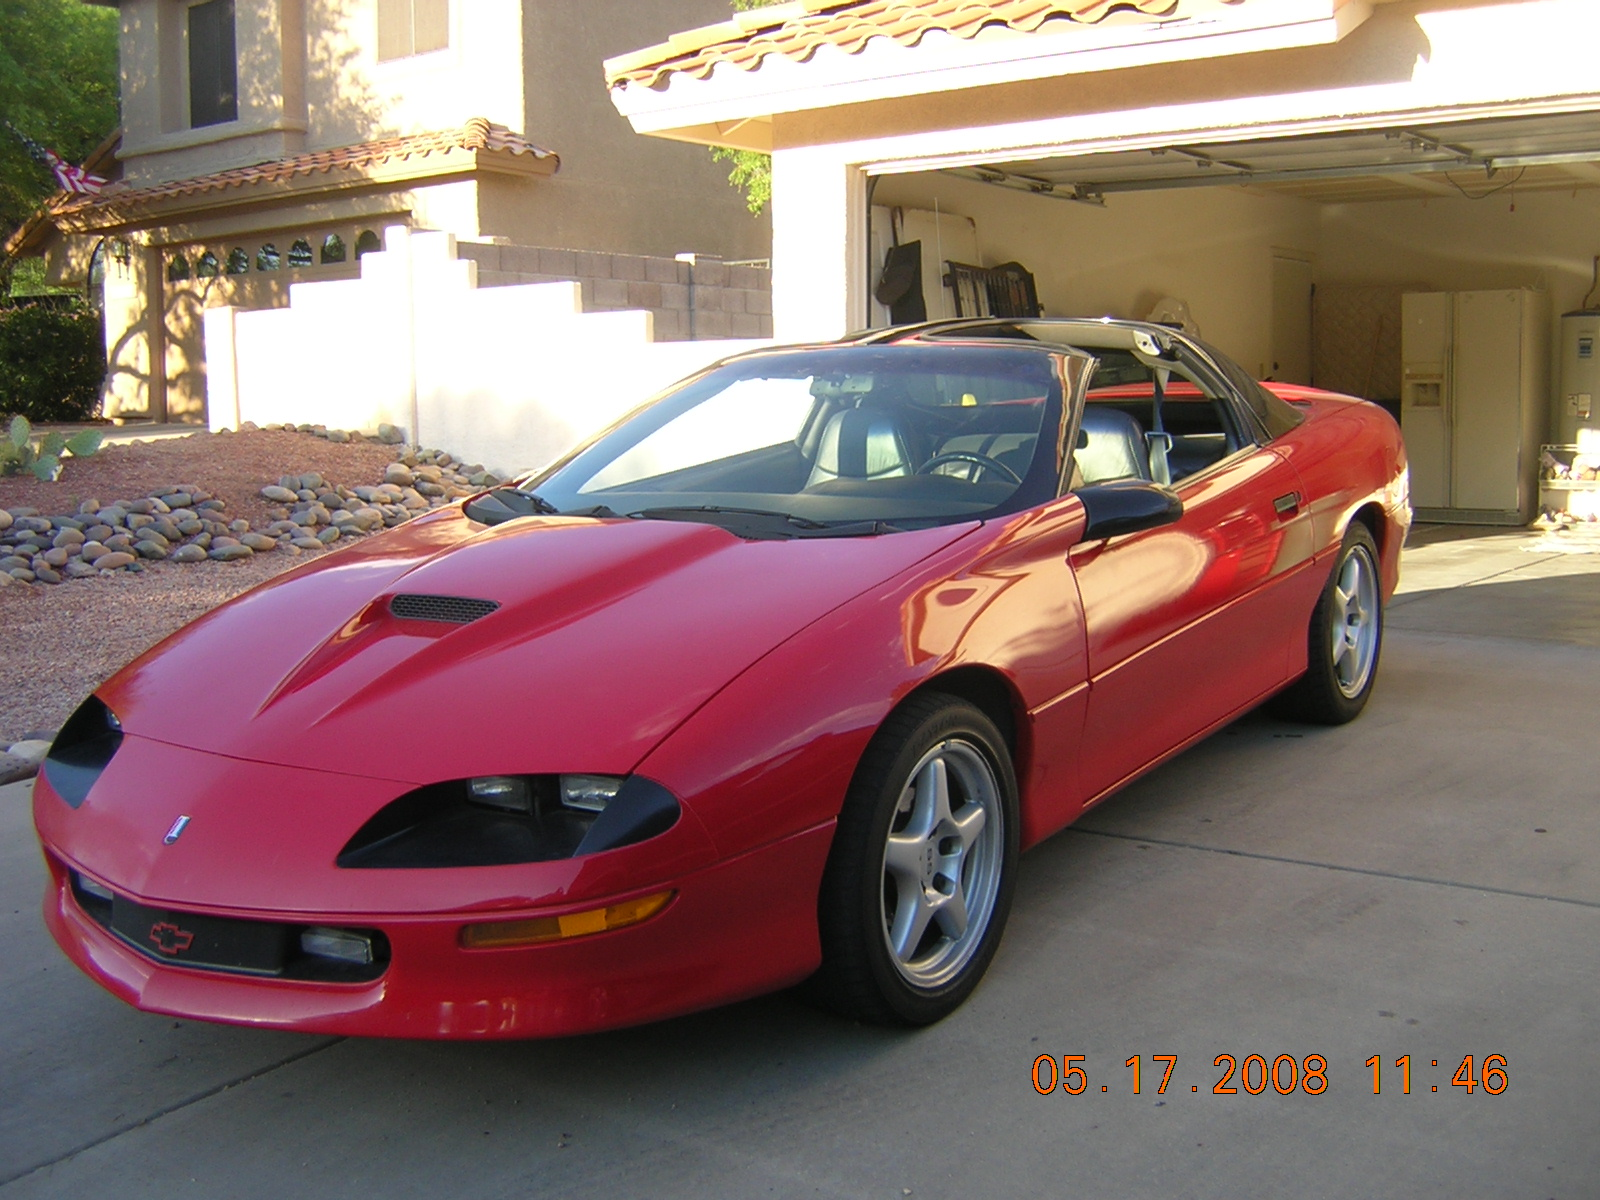 1996 Chevrolet Camaro - Pictures